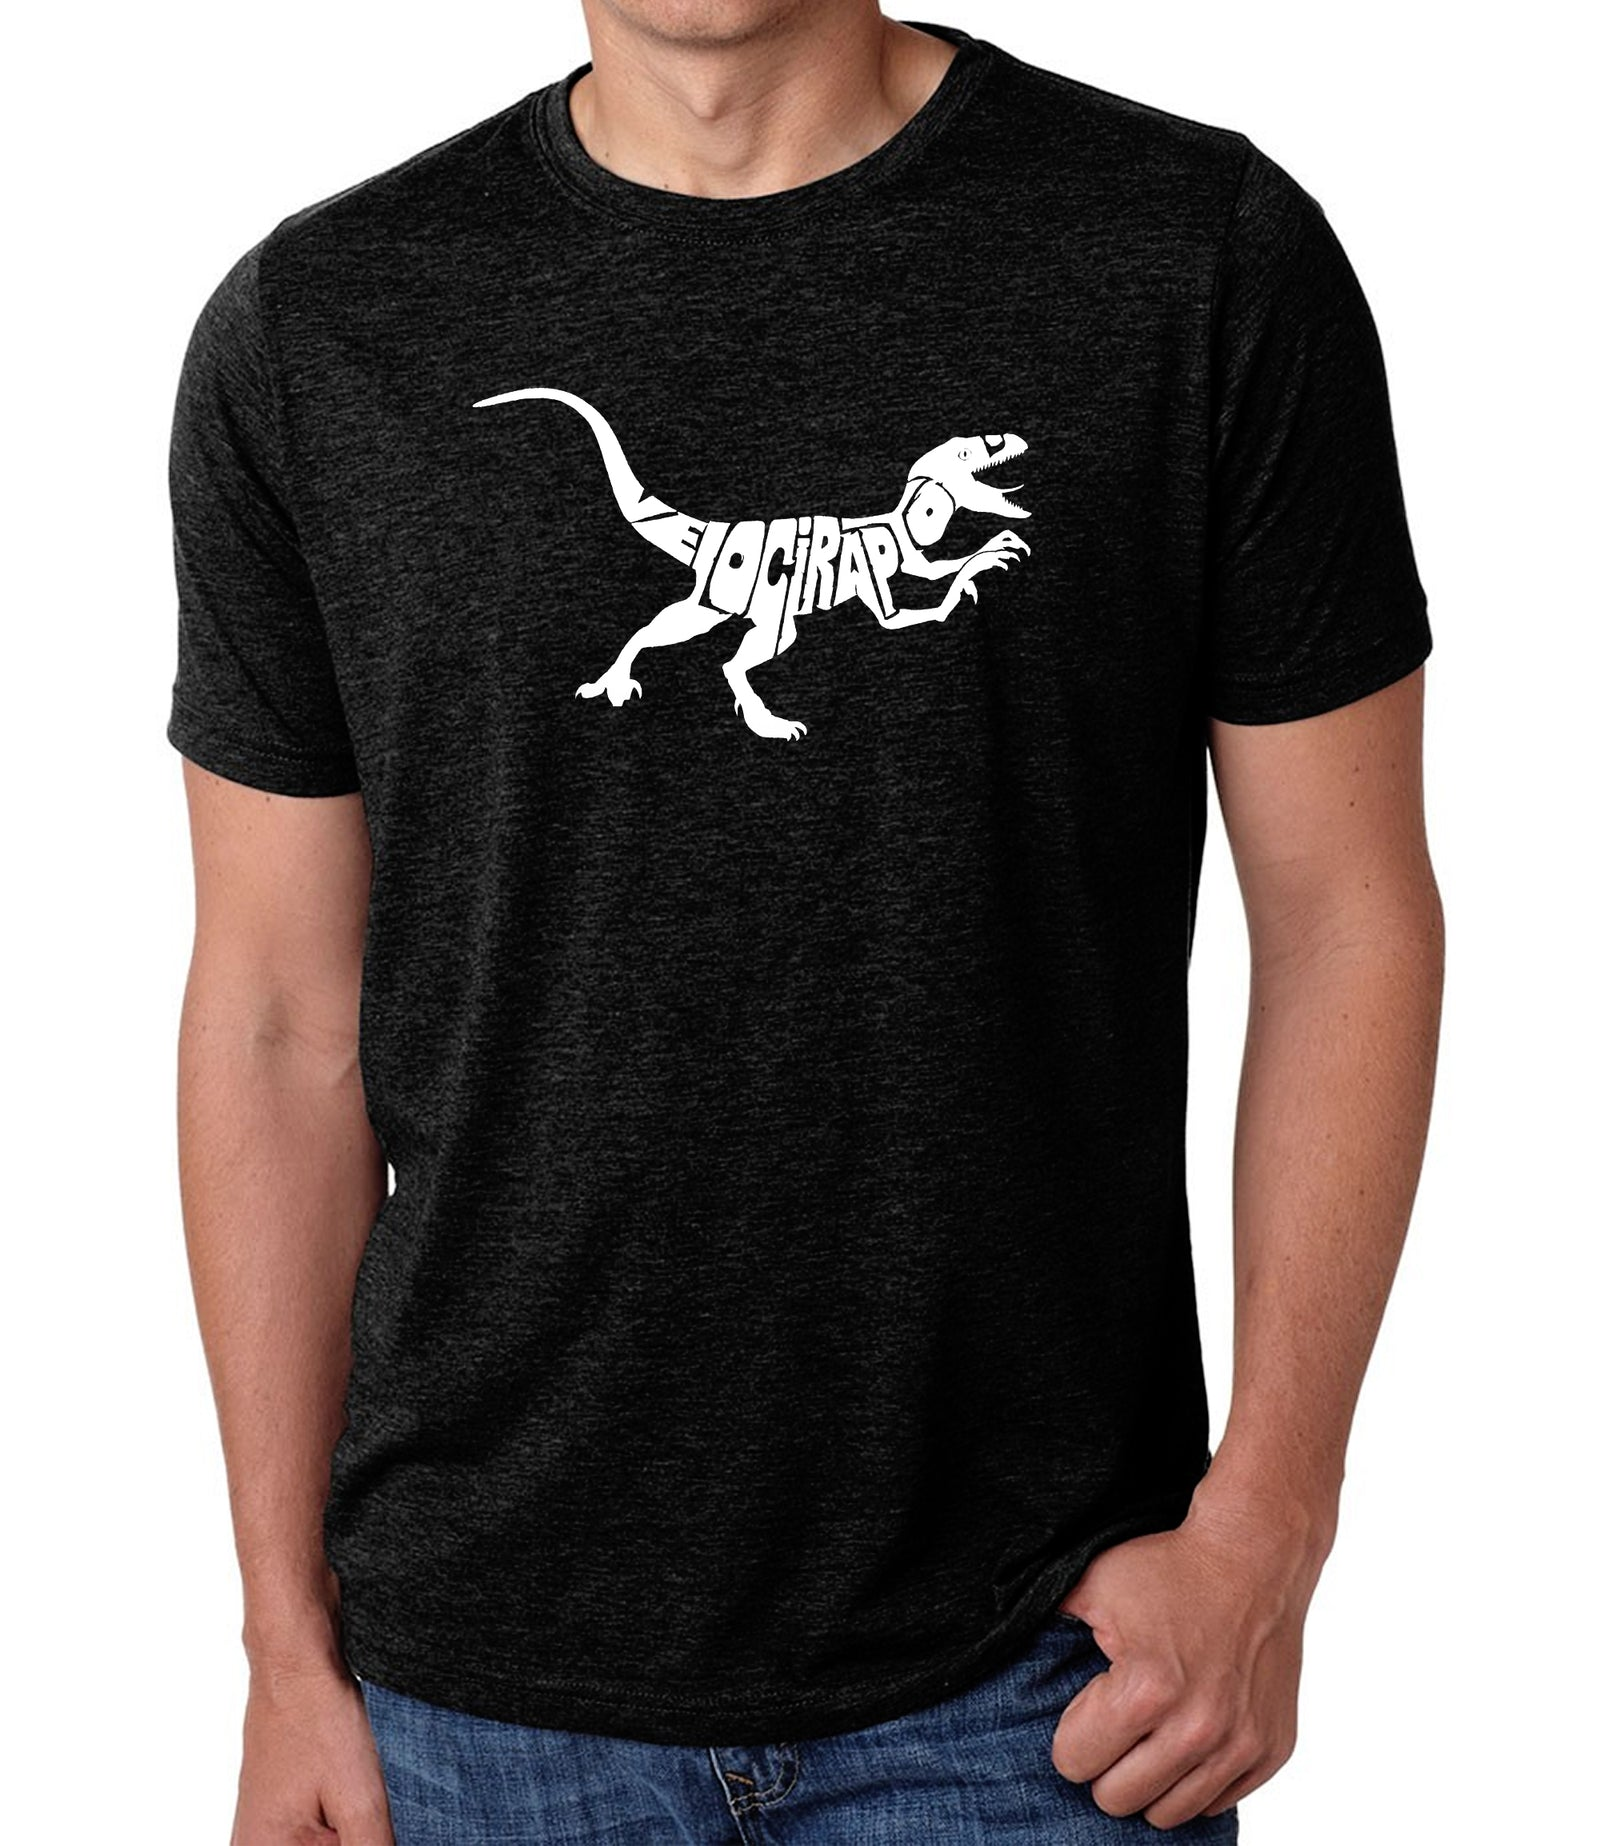 Men's Premium Blend Word Art T-shirt - Velociraptor